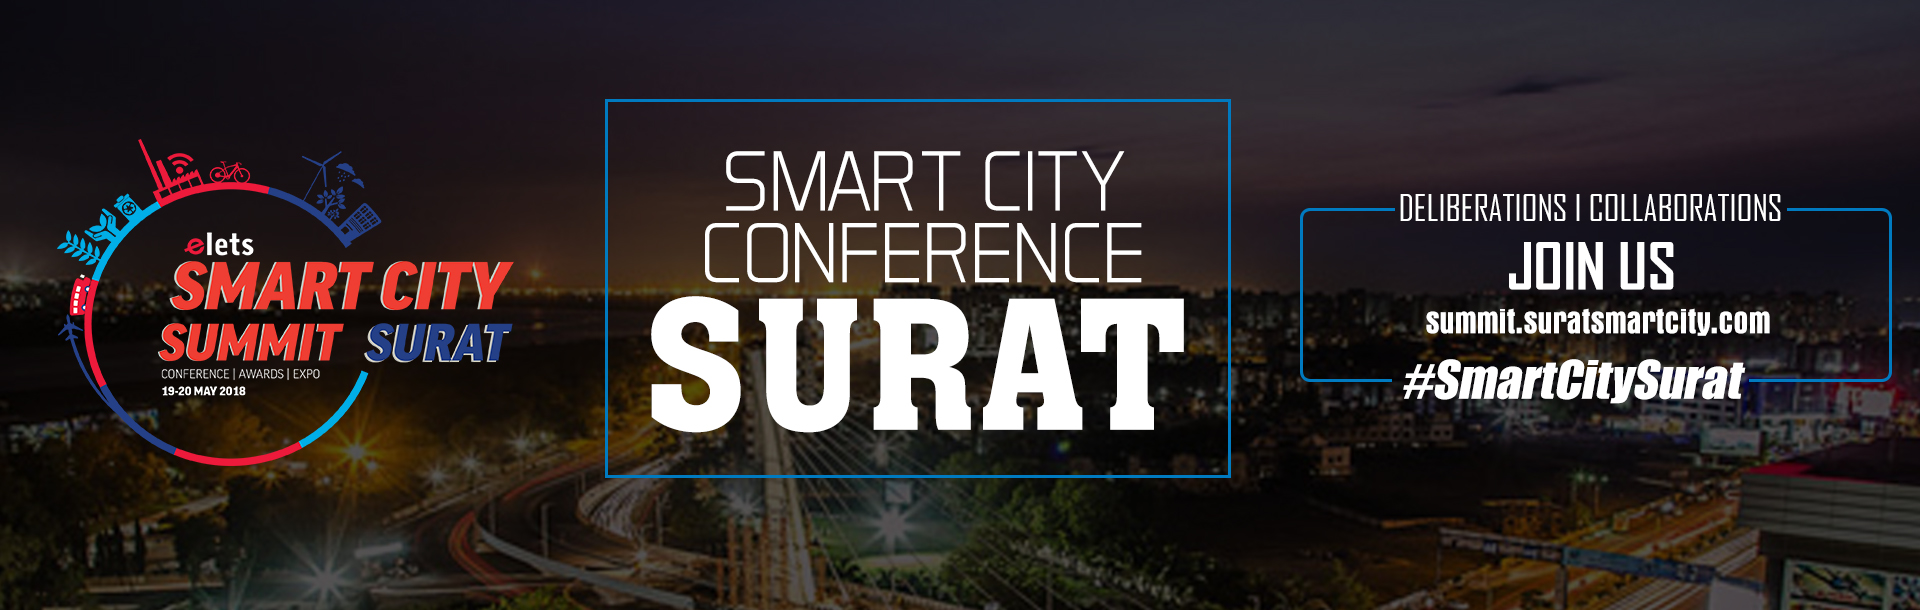 Smart City Summit on 19th May 2018 and 20th May 2018